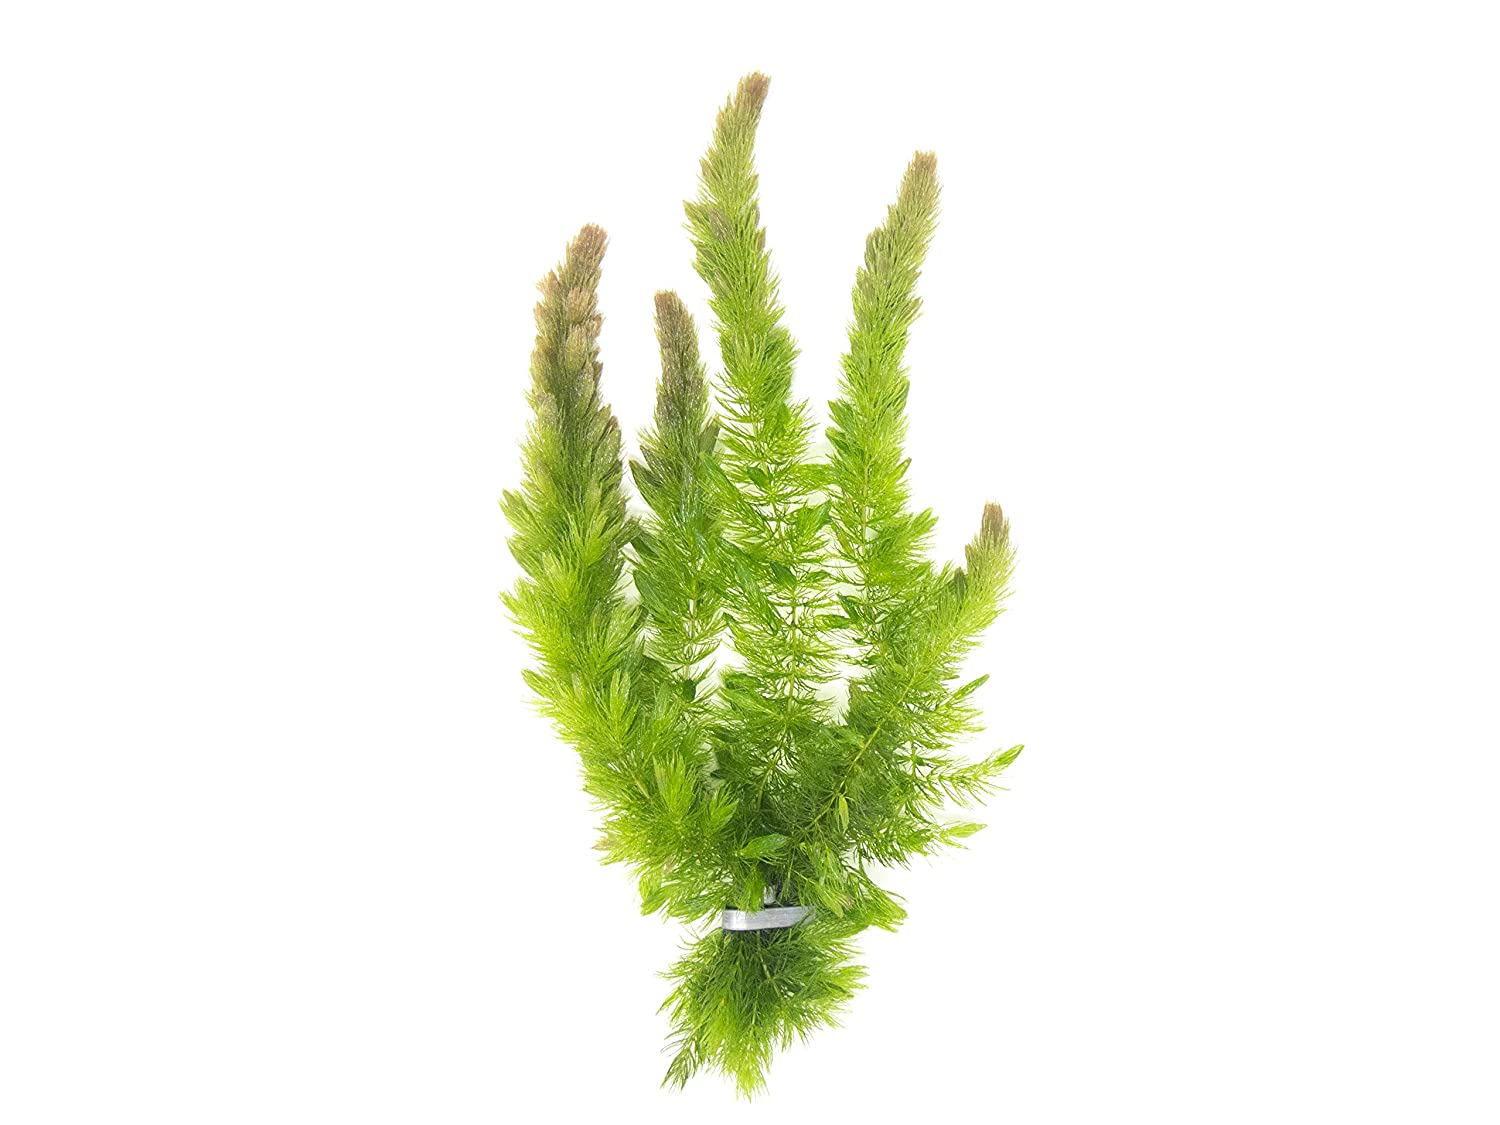 Live Hornwort Plant 2 Extra Large Bunches of Pond Plants by Aquatic Arts Over 10 Stems by Aquatic Arts